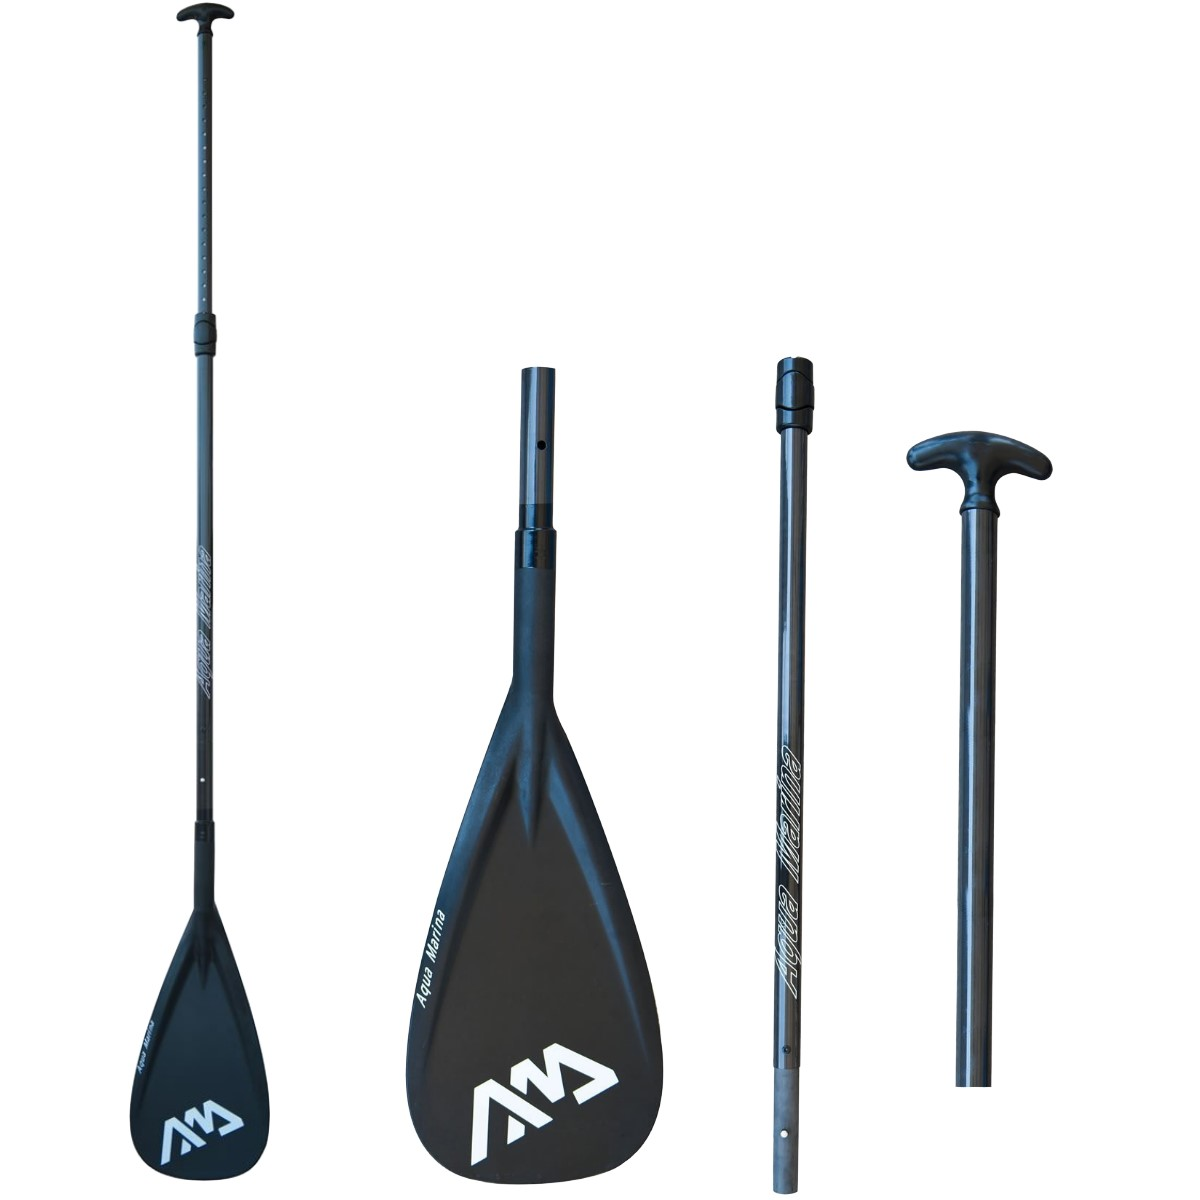 CARBON GUIDE ISUP PADDLE (3 SECTIONS) AQUA MARINA 2017